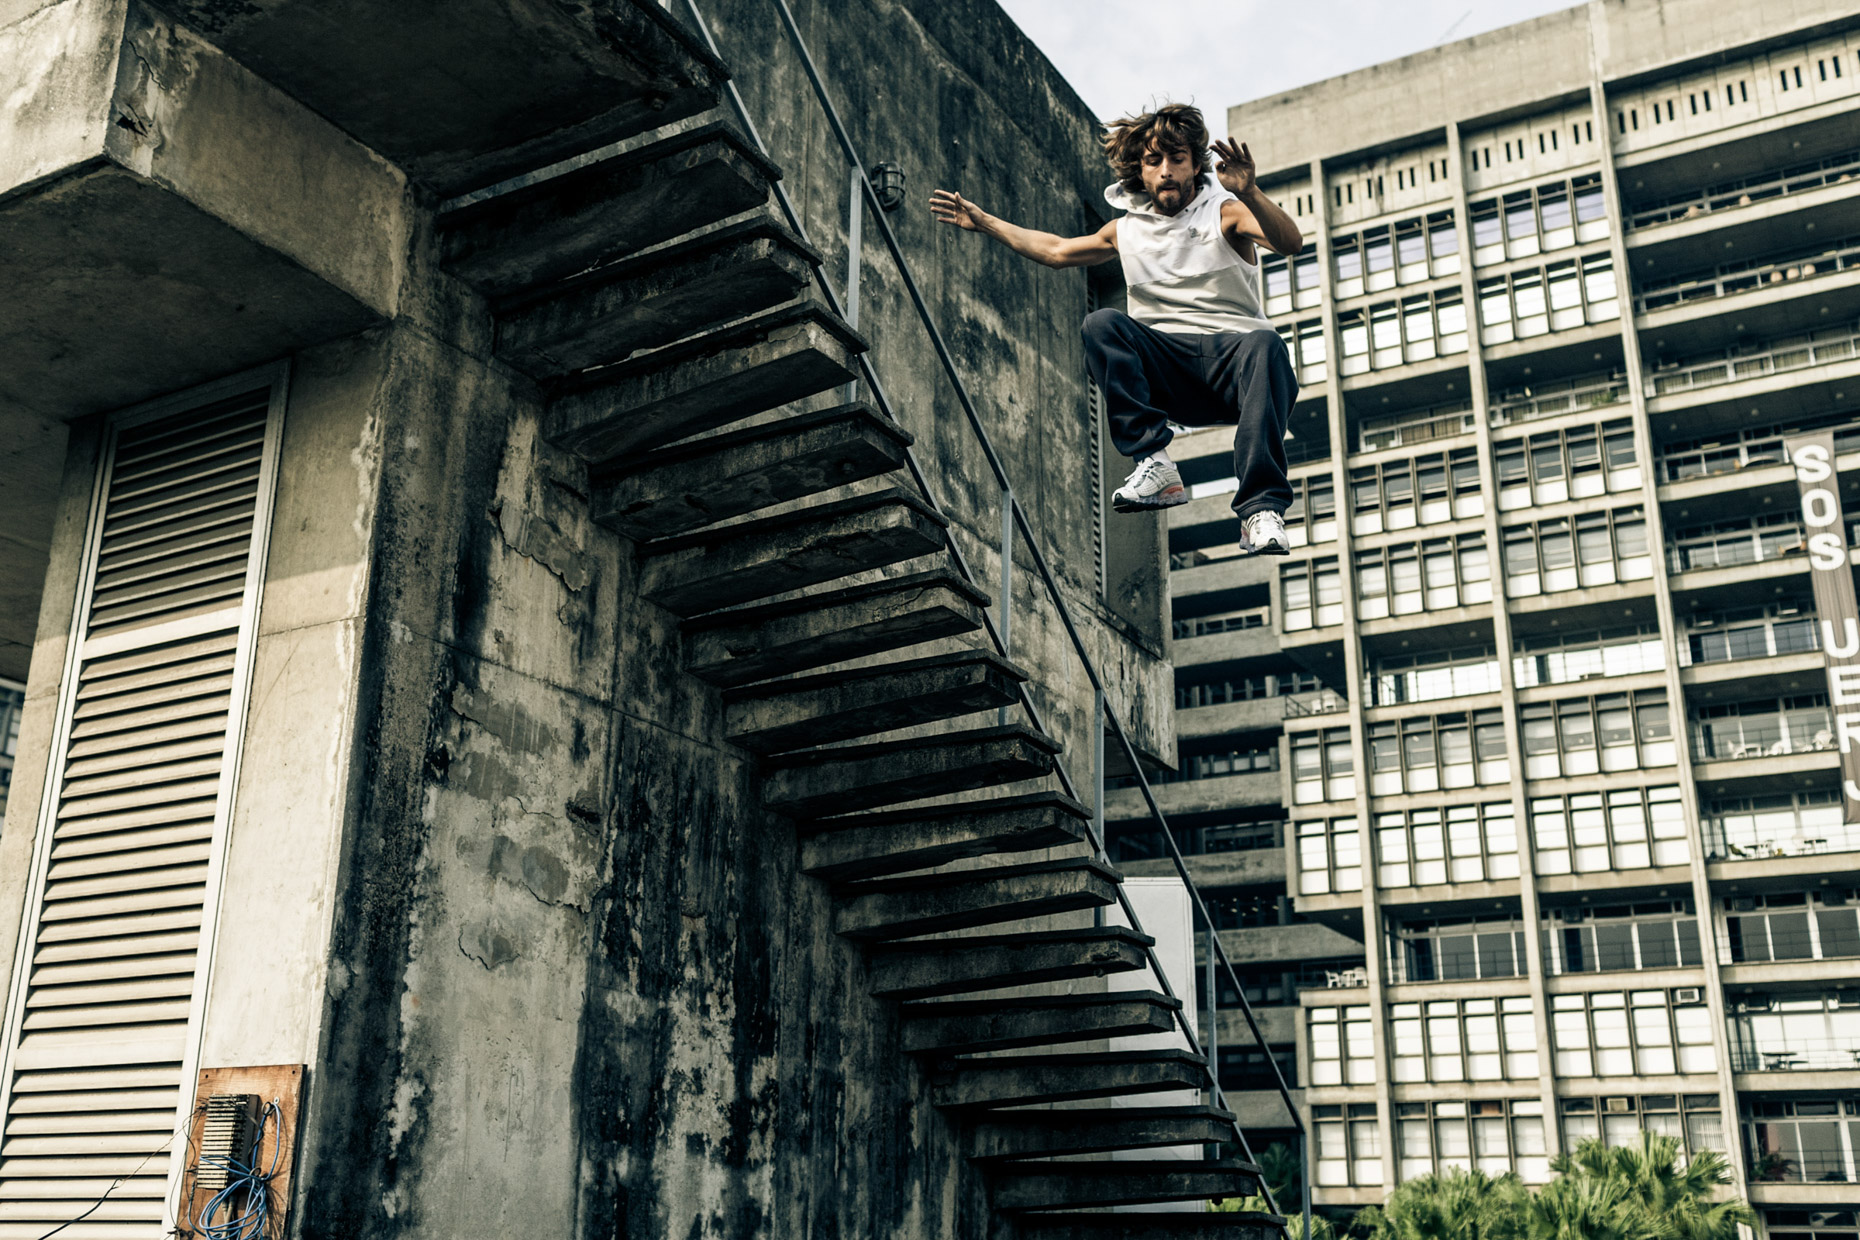 professional freeruner Jeronimo Bittencourt for adidas